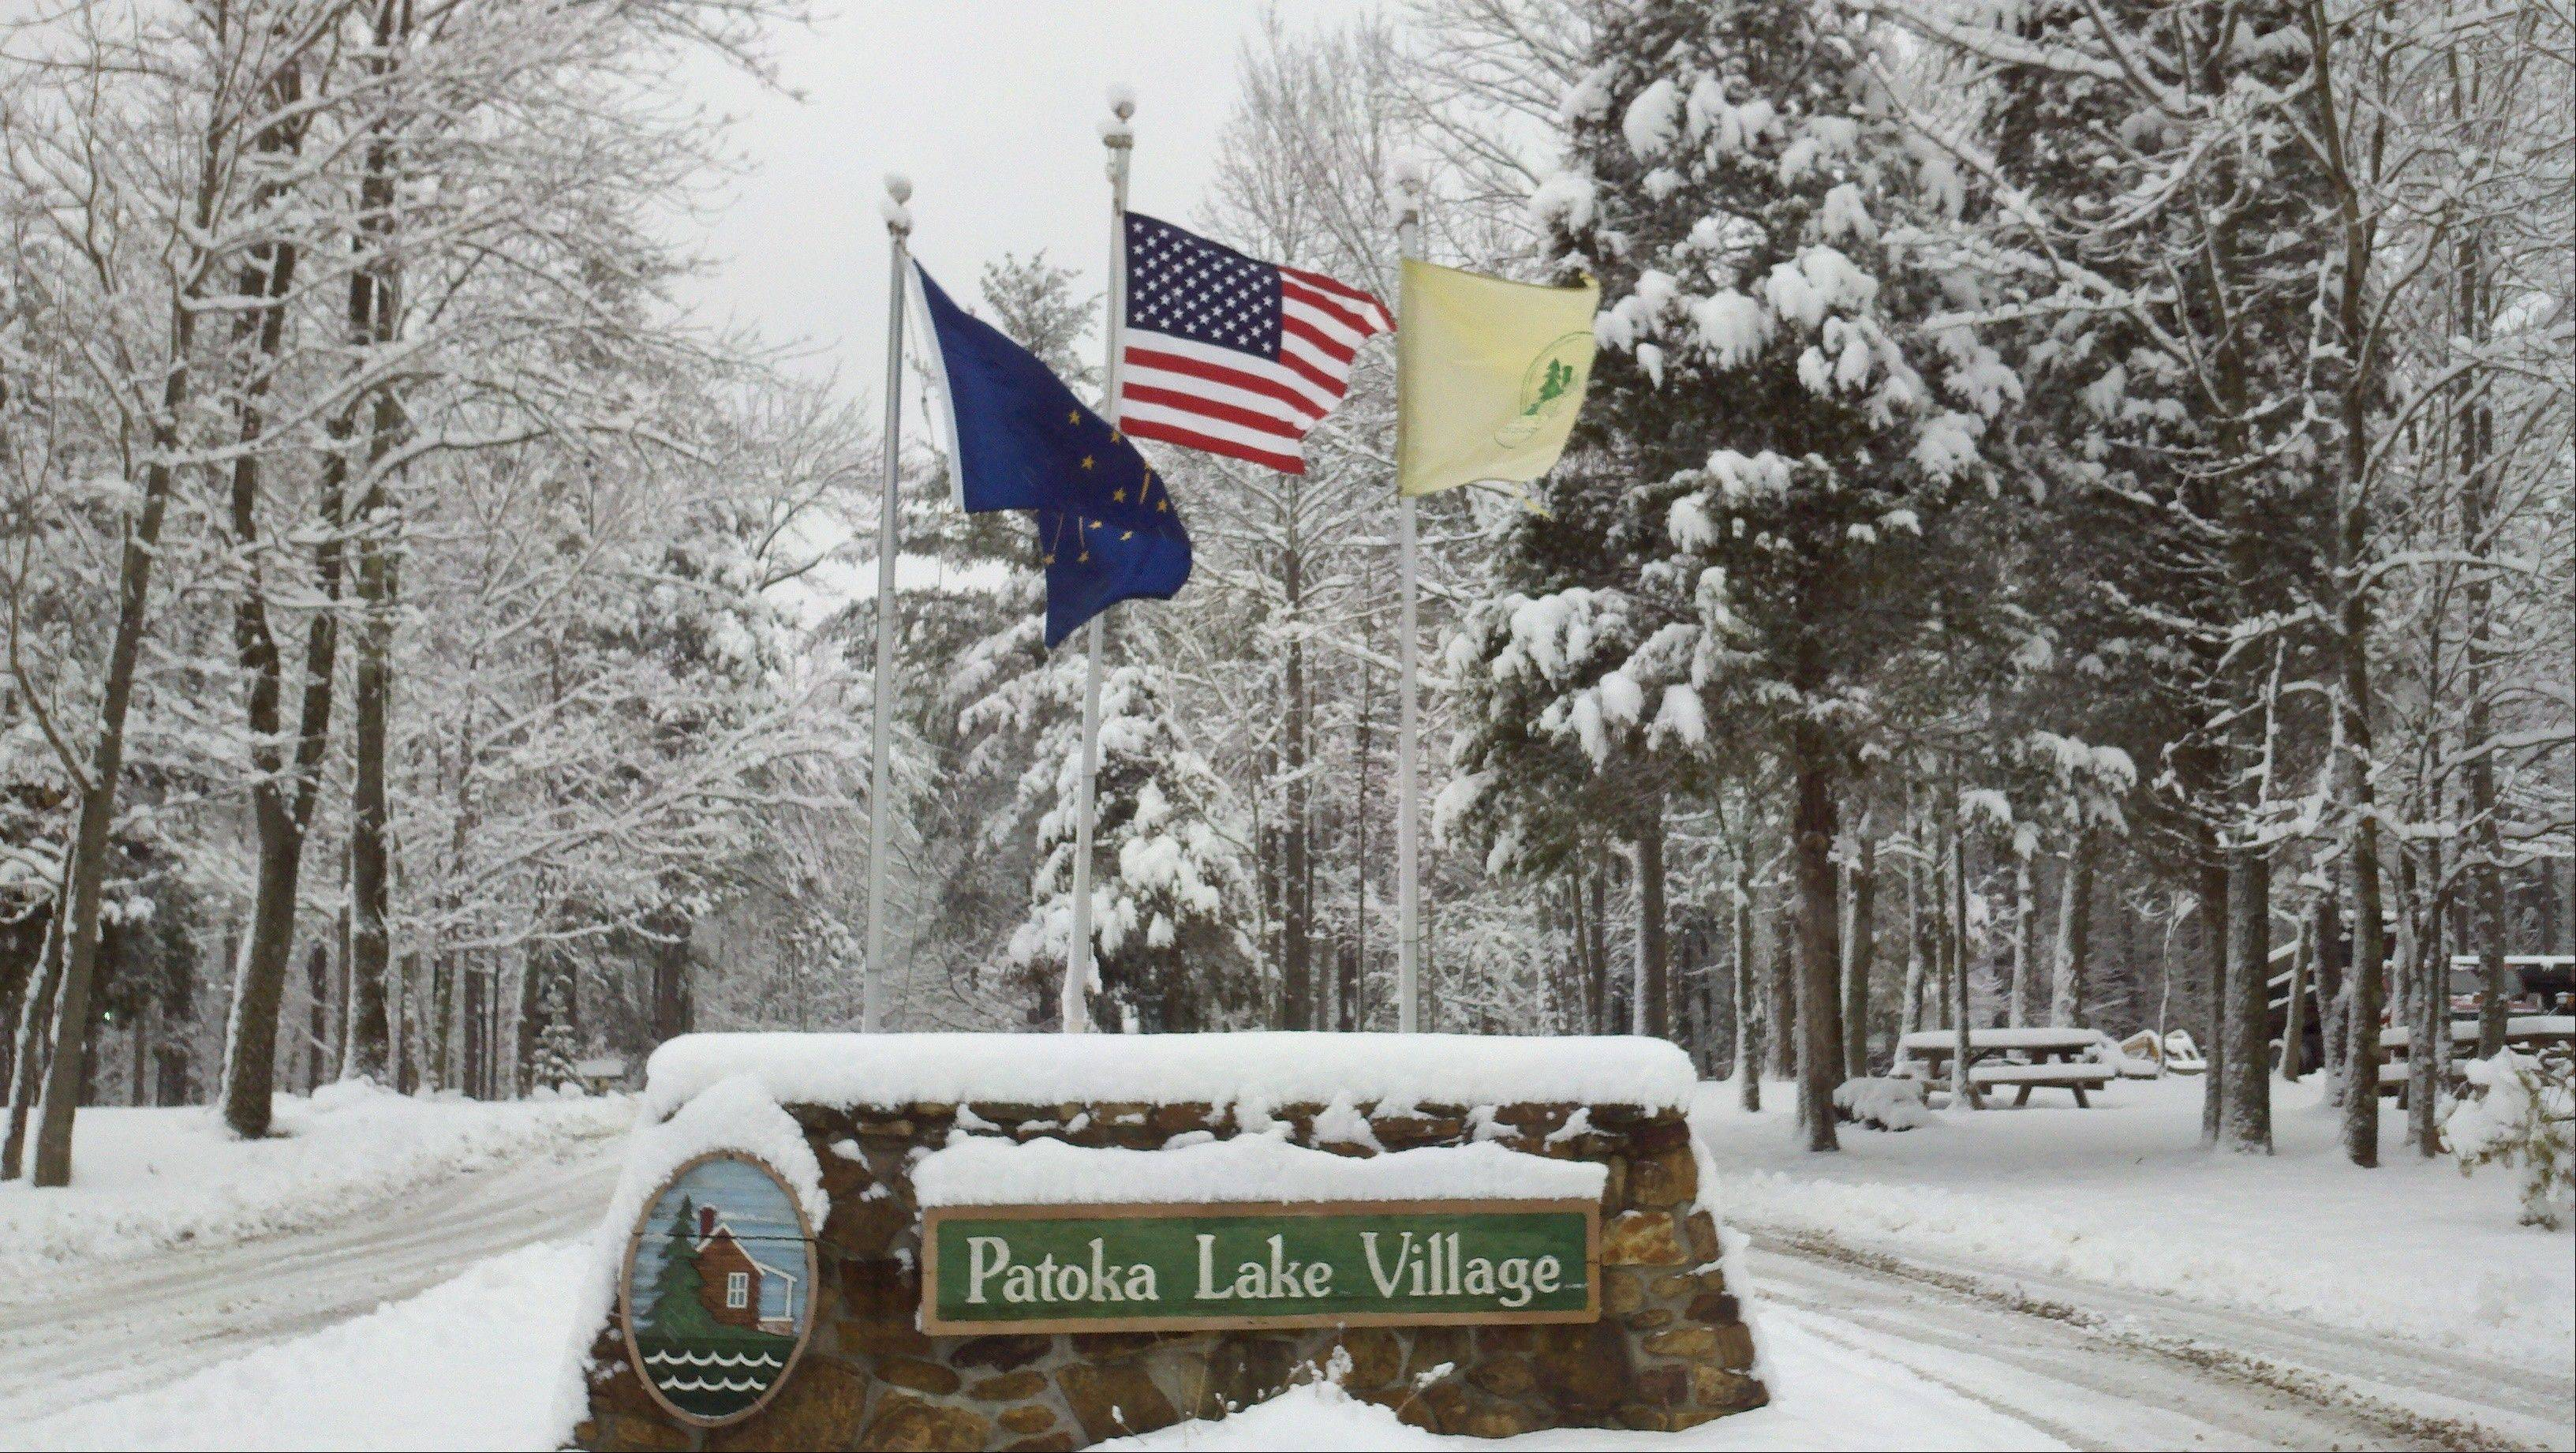 French Lick Cabins at Patoka Lake Village in southern Indiana offer a rustic respite and access to plenty of action, including skiing, boarding and tubing at Paoli Peaks, a multitude of caves and historic French Lick and West Baden hotels.